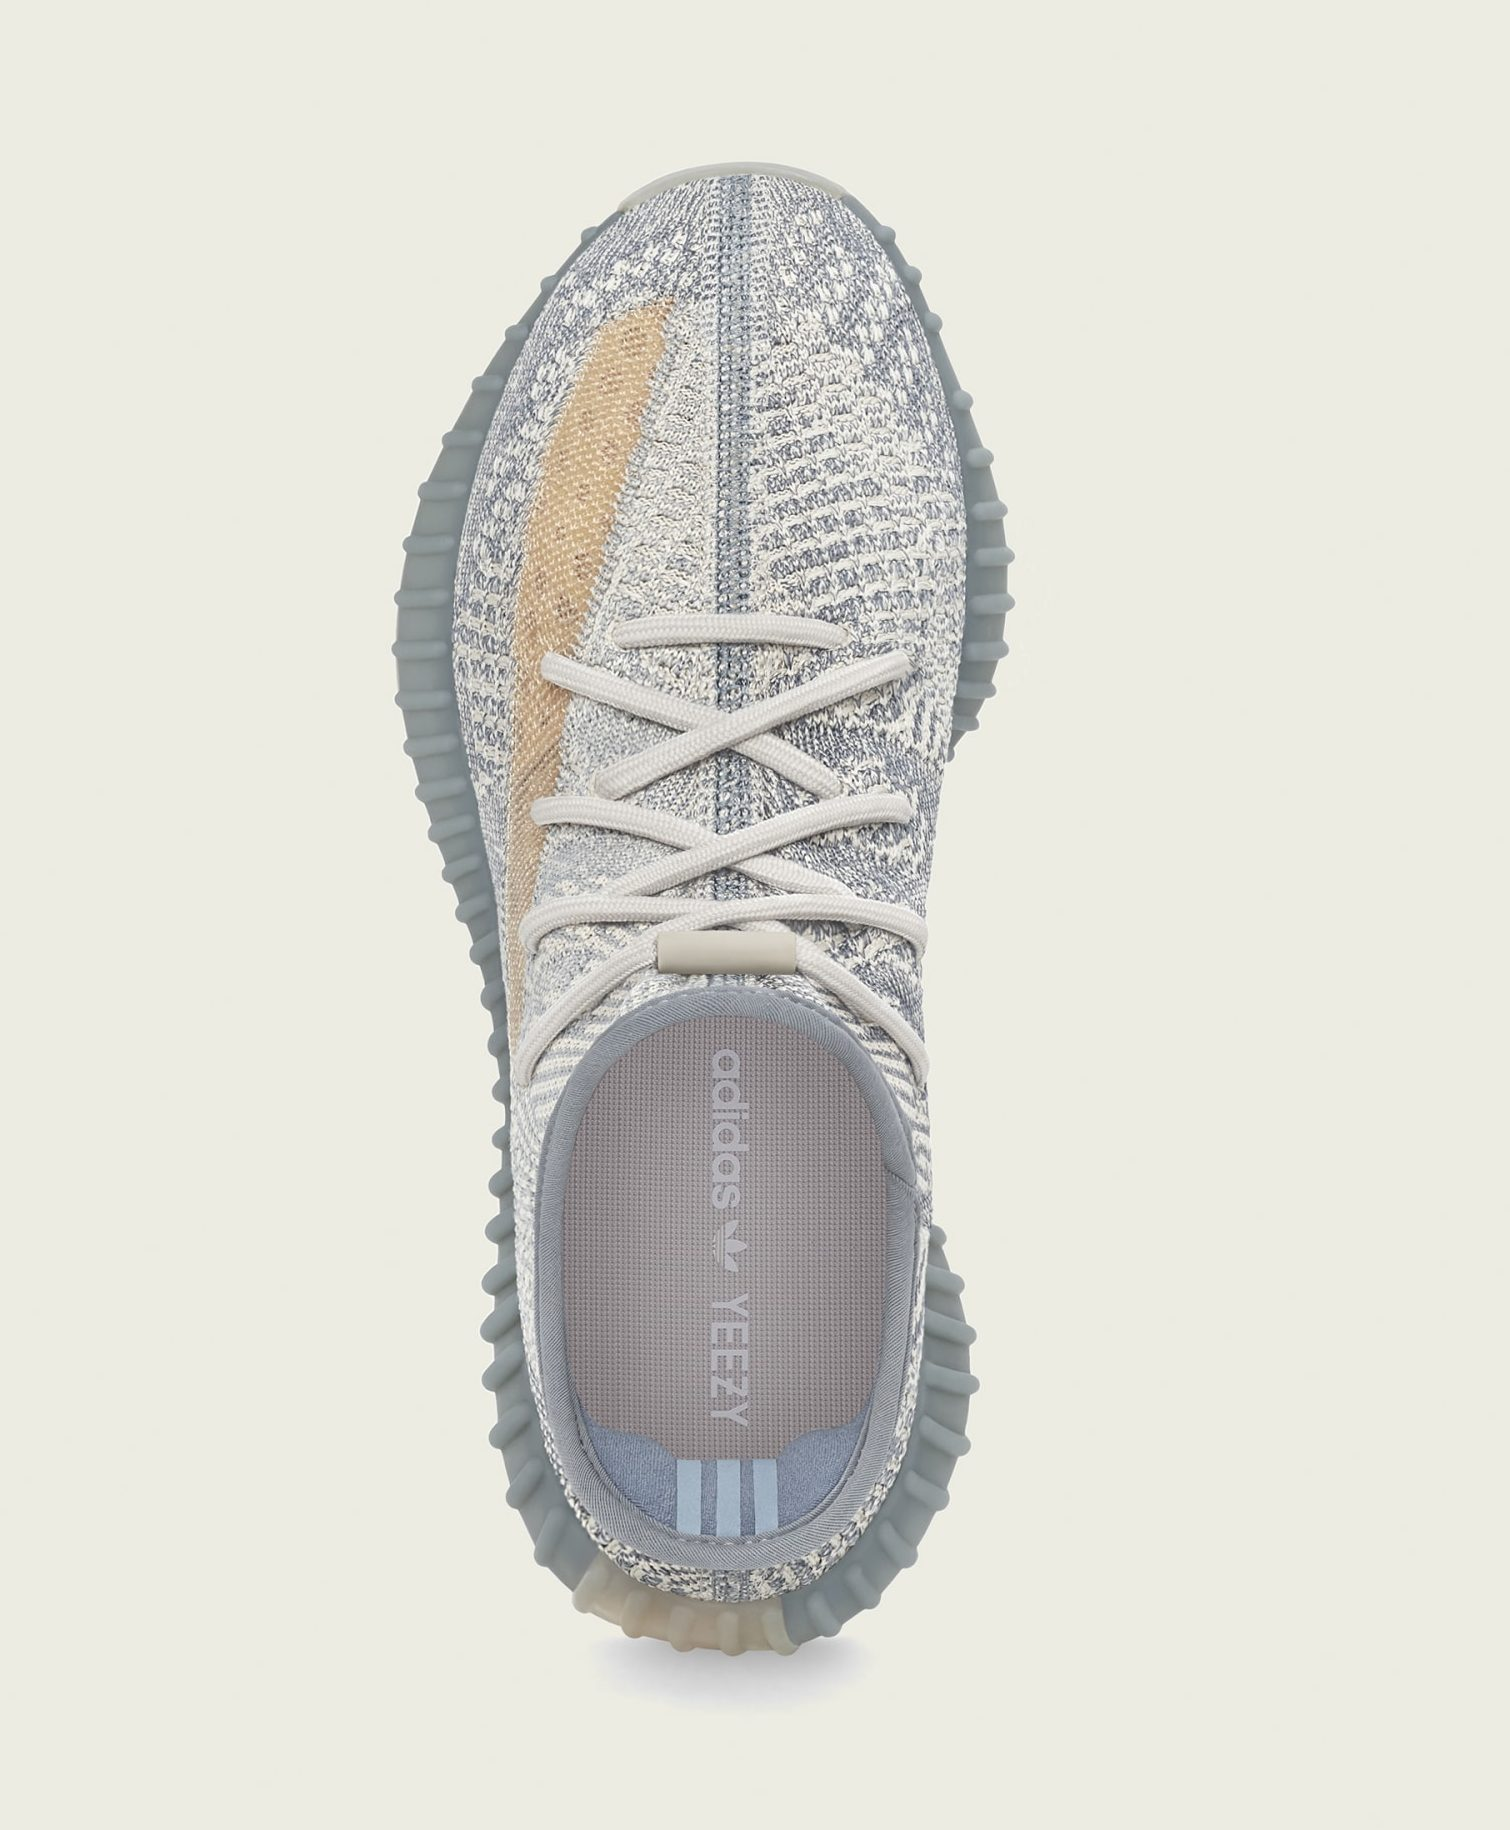 Adidas Yeezy Boost 350 V2 'Israfil' Release Info: How to Buy the ...